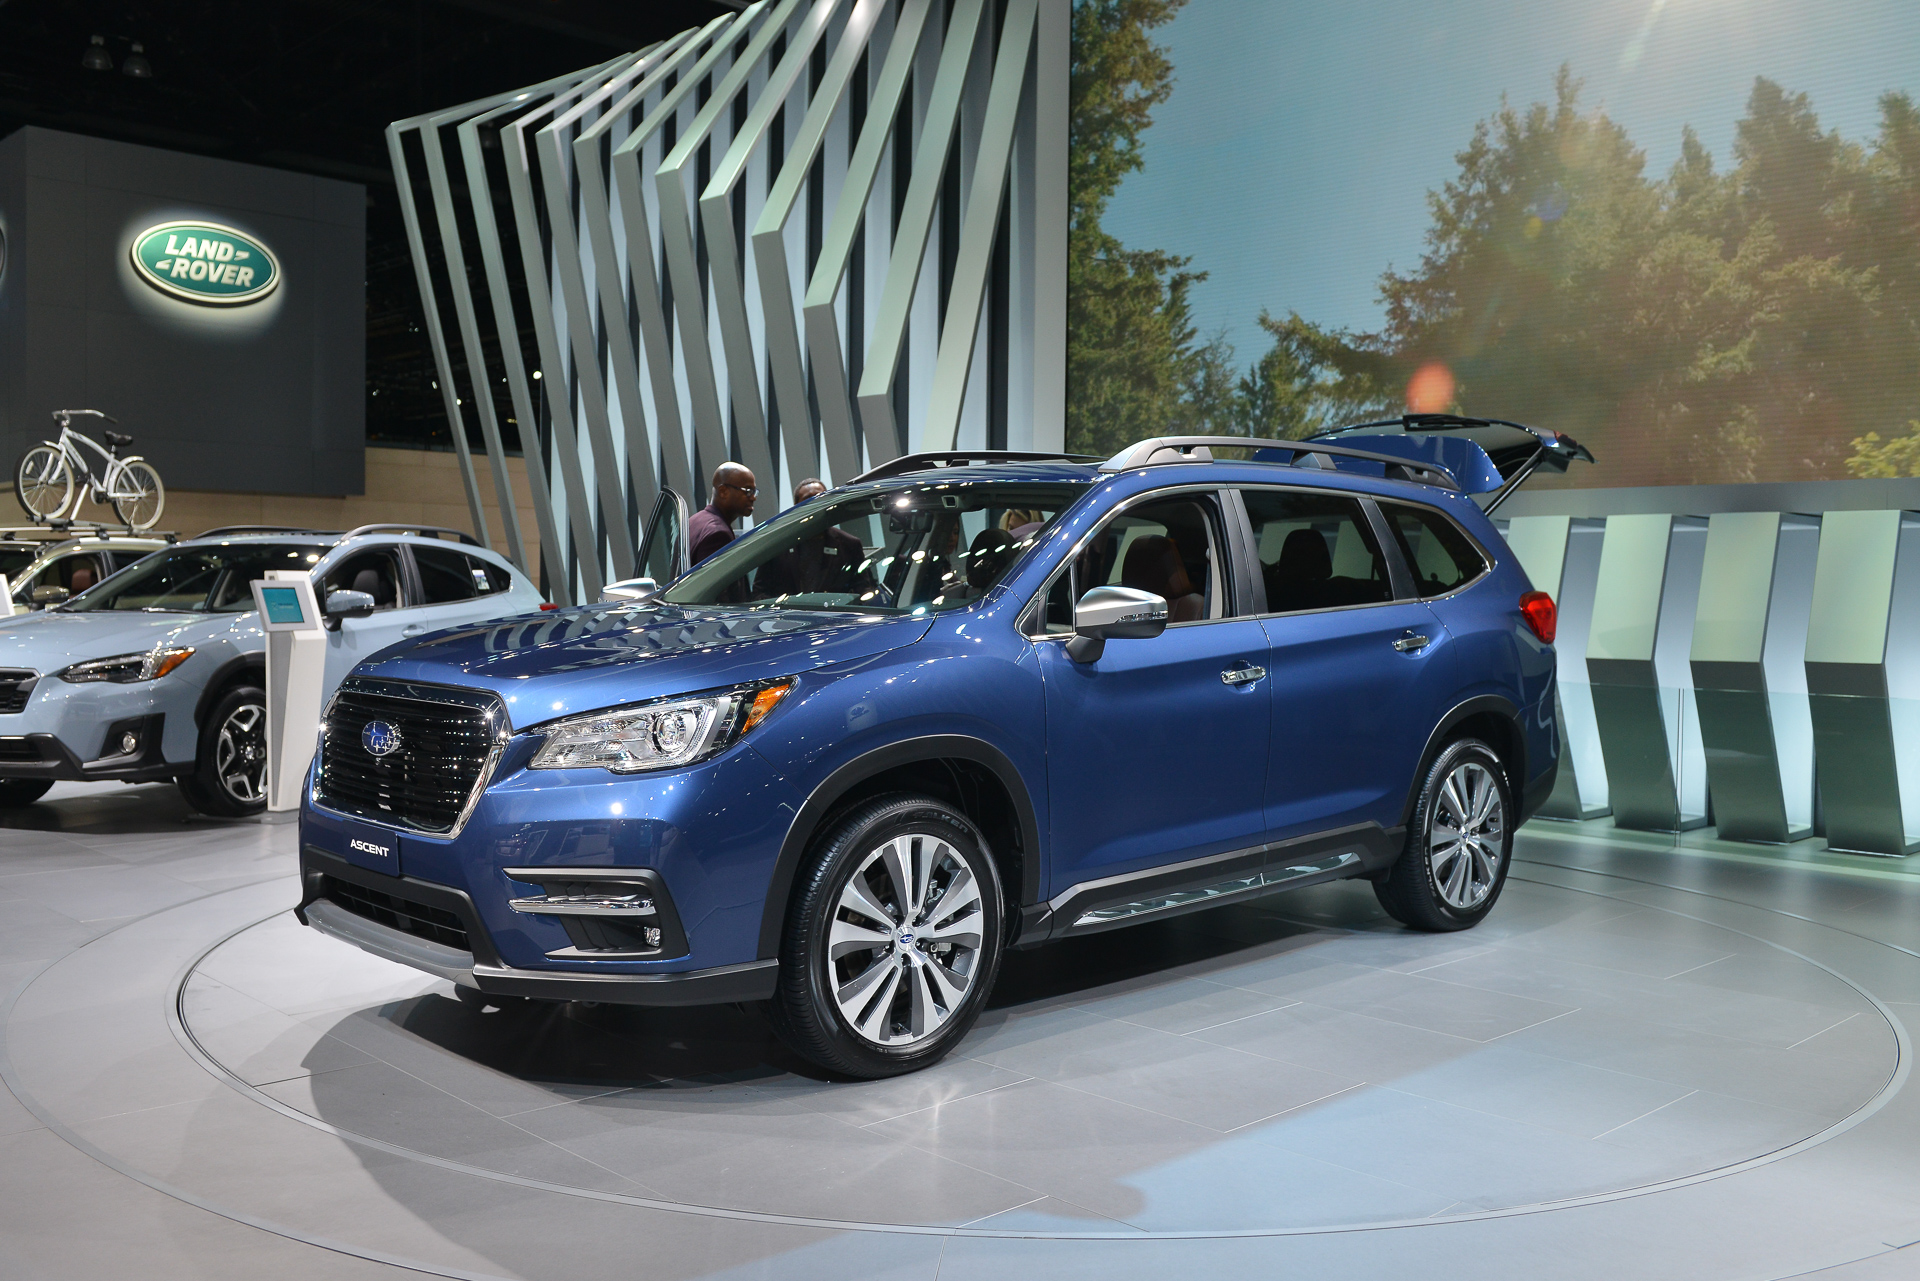 2019 subaru ascent suv  row  row  row your crossover